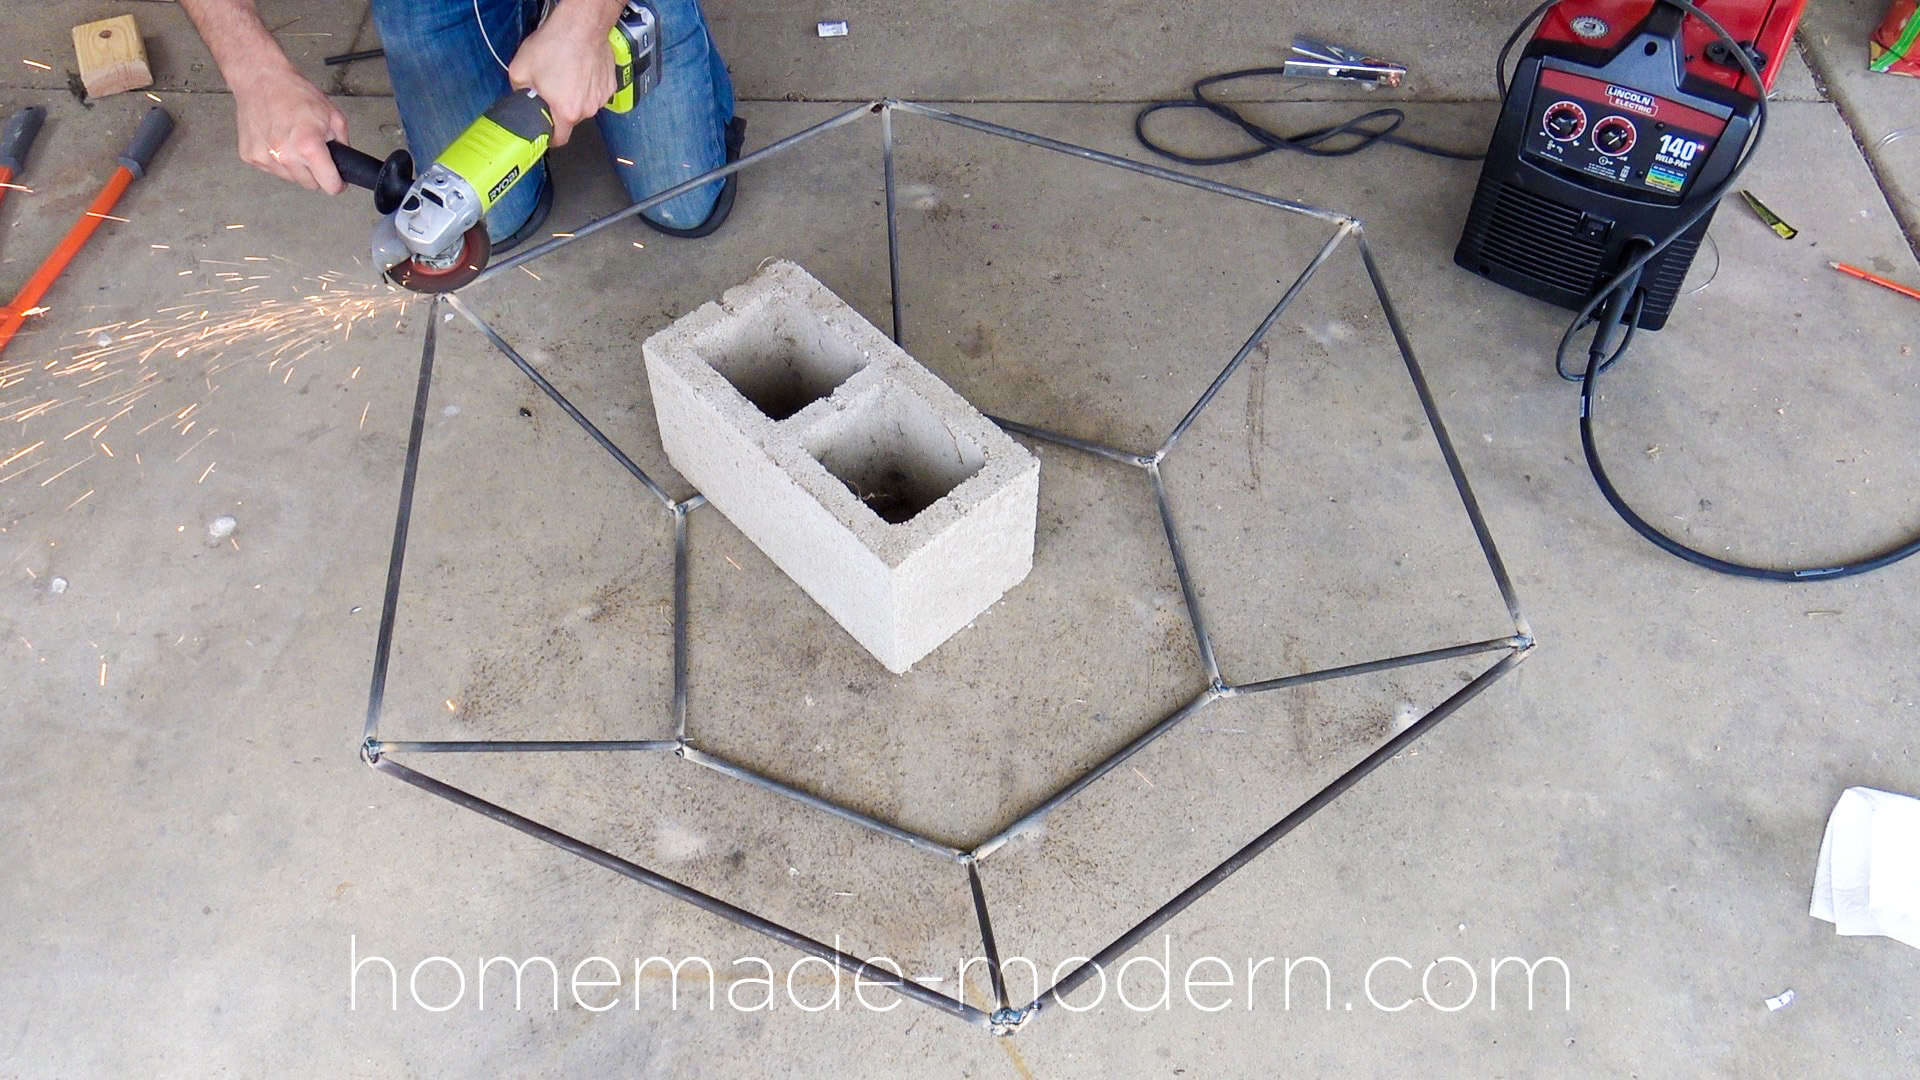 How To Cut Steel Rod At Home